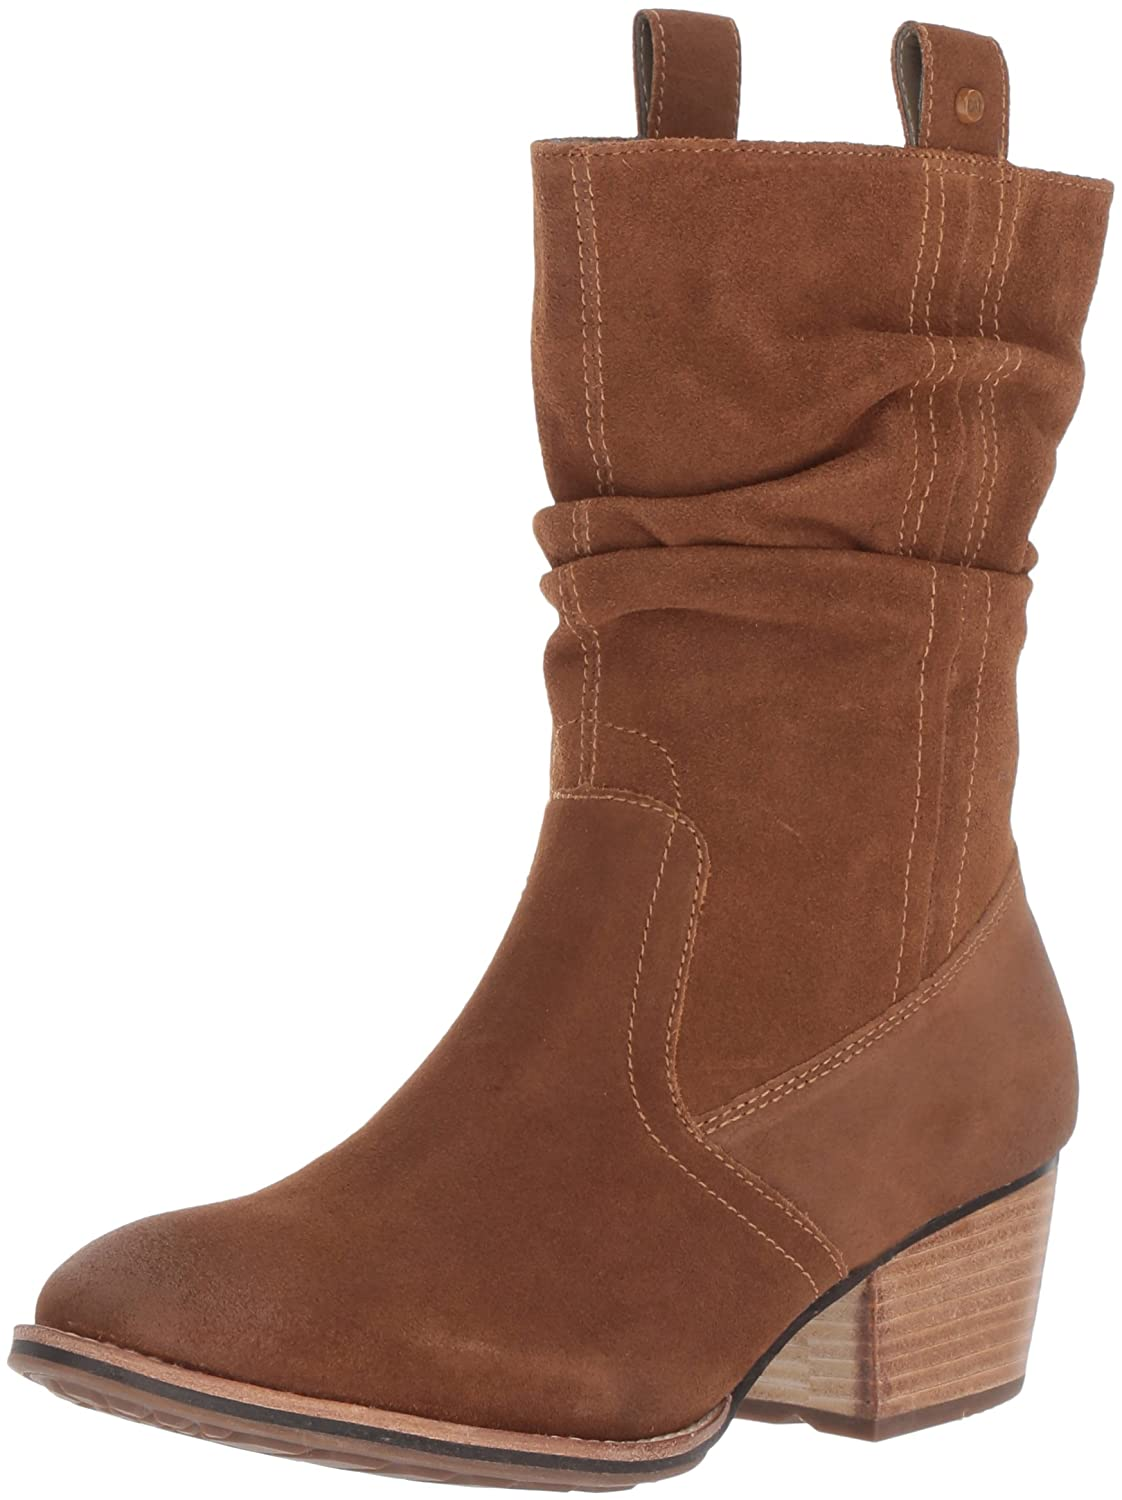 Caterpillar Women's Incense Shaft Pull Inside Zip Mid Calf Boot B01MQVS0DC 6.5 B(M) US|Brown